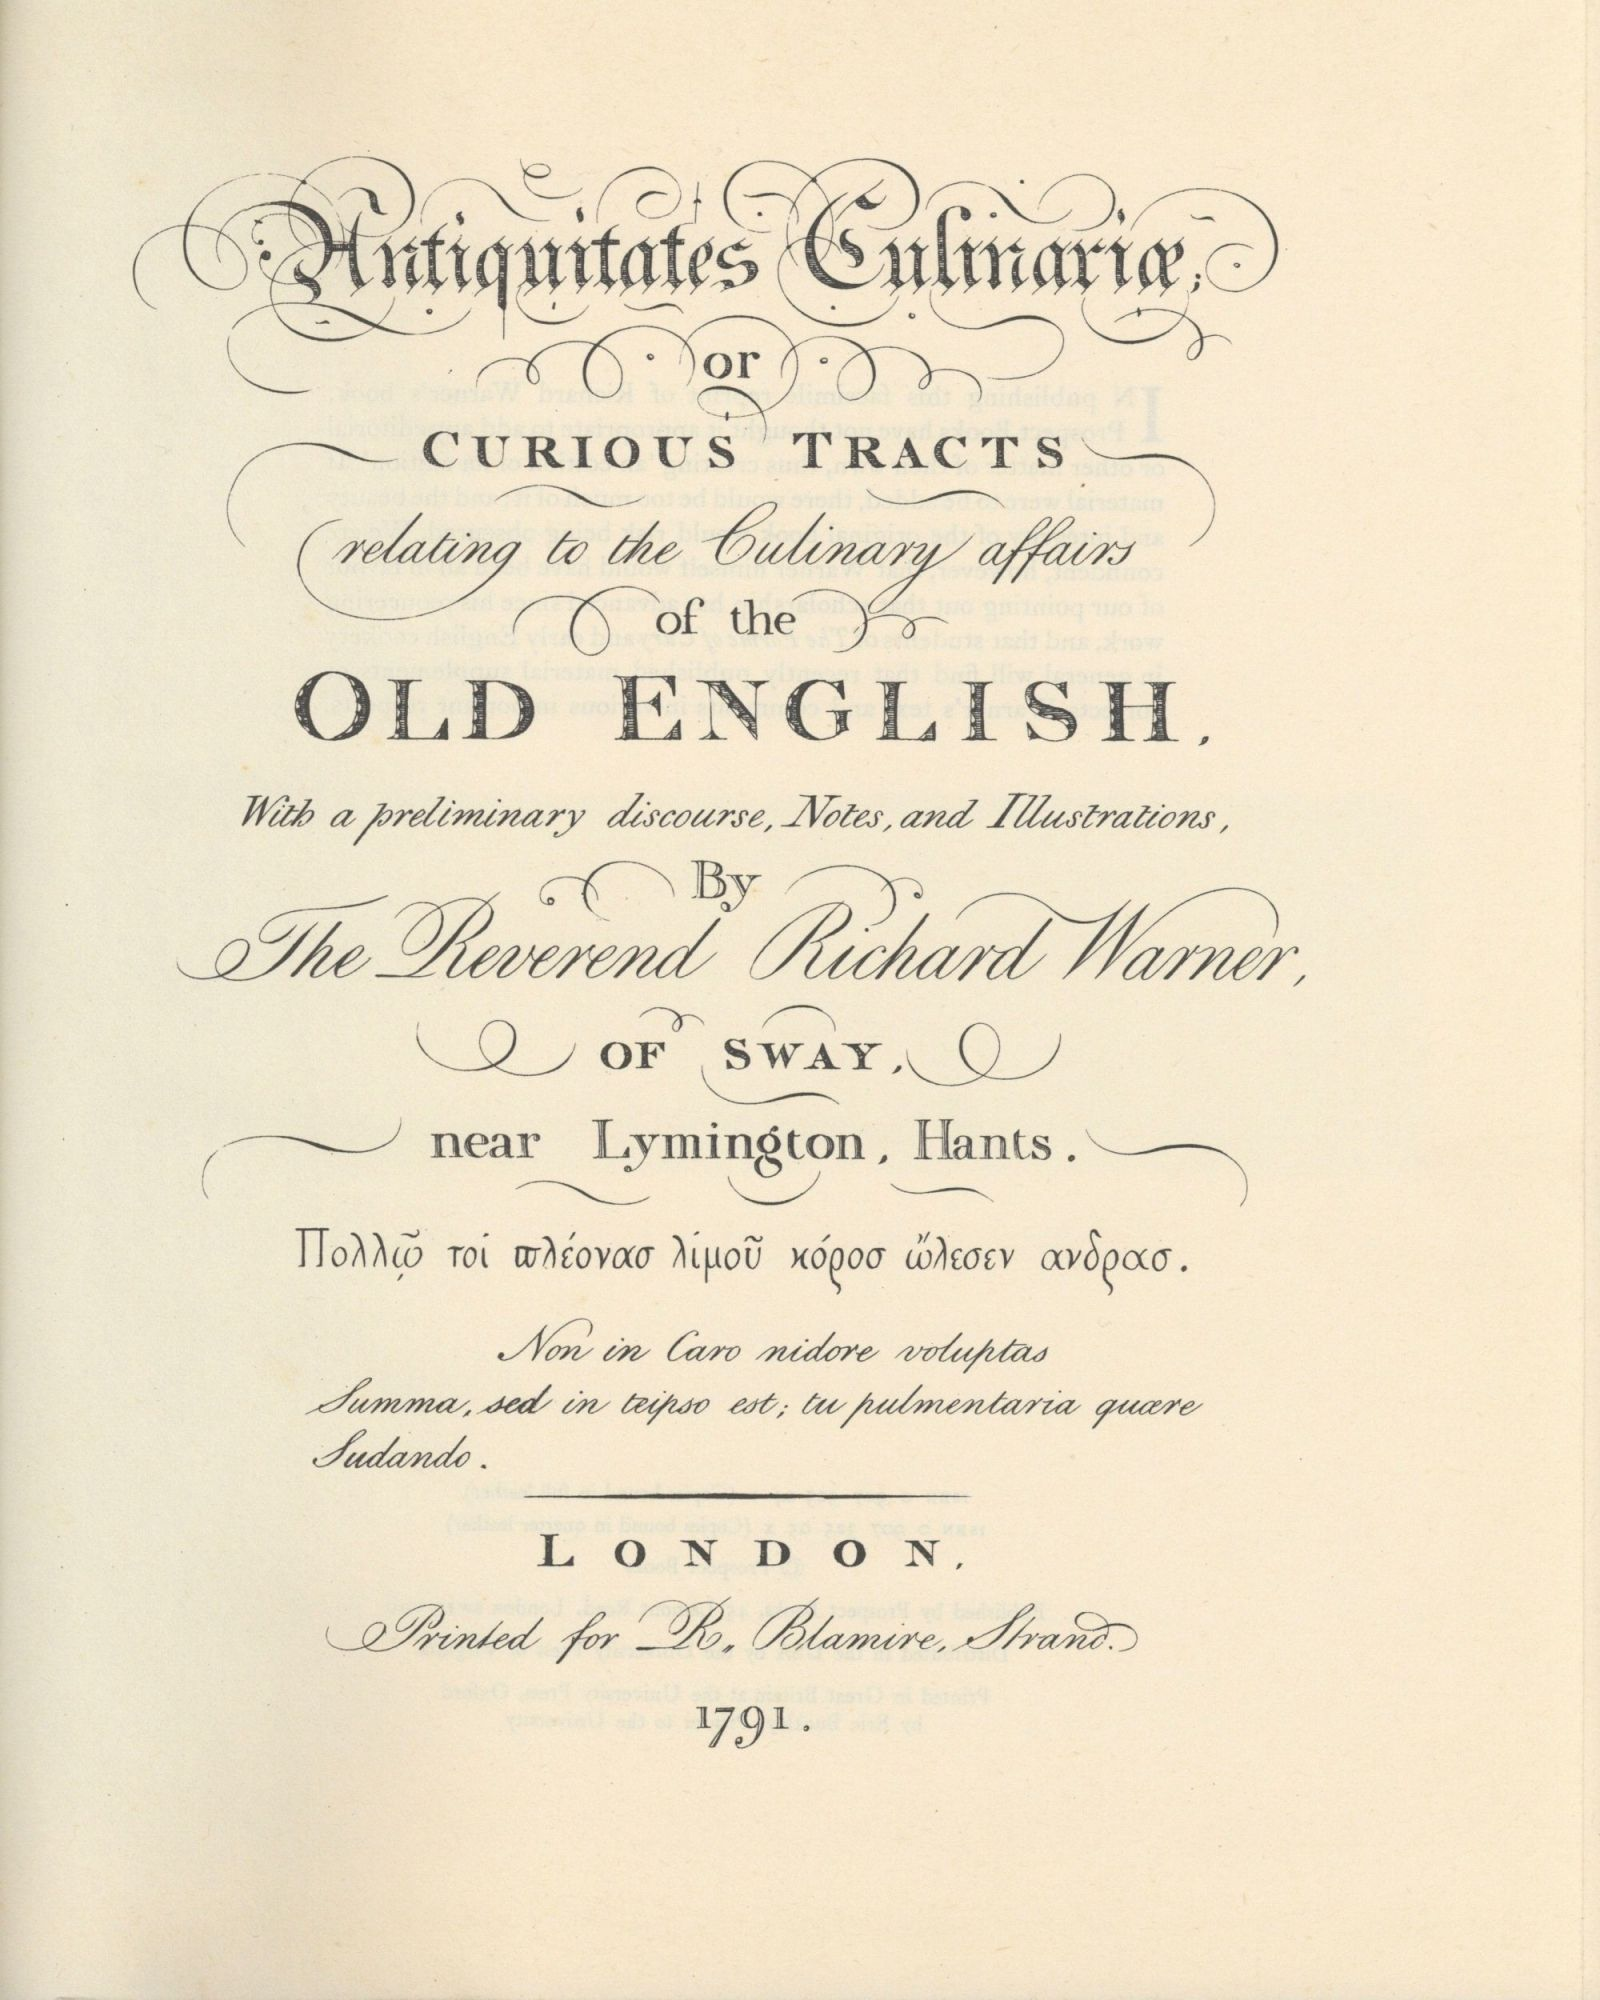 Antiquitate Culinariae; or Curious Tracts relating to the Culinary affairs of the Old English. With a preliminary discourse, Notes and Illustrations, By the Reverend Richard Warner, of Sway, near Lymington, Hants. Richard Warner.